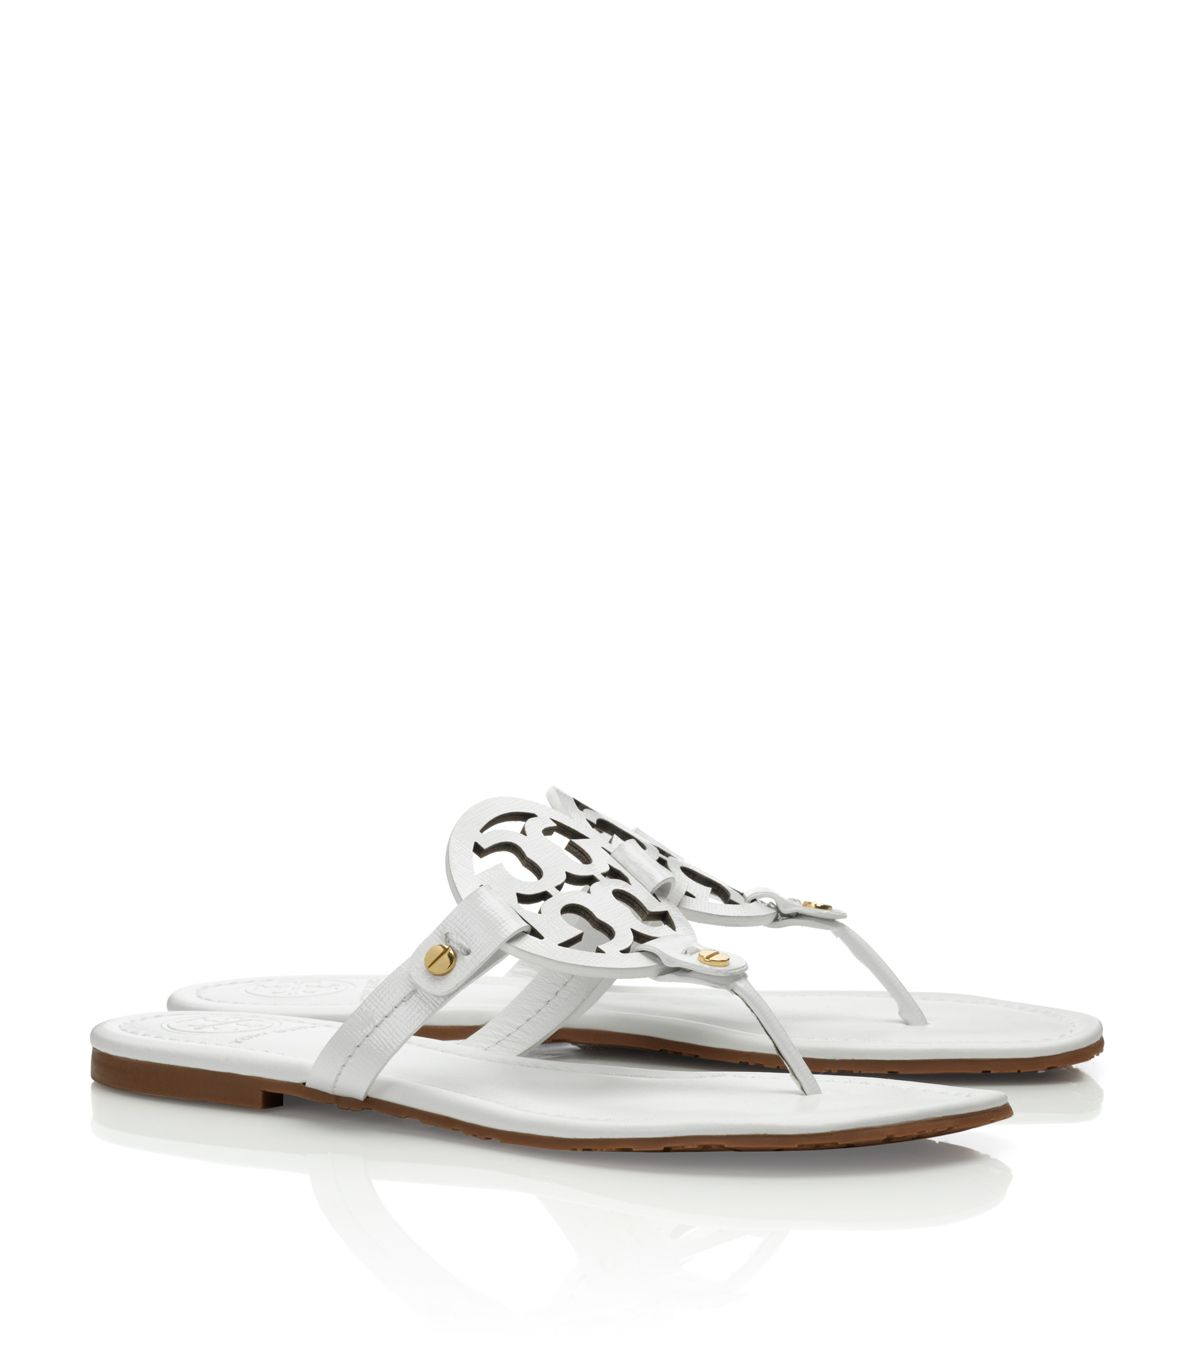 6b4037403c6064 Tory Burch Patent Leather Miller Sandal in White - Lyst